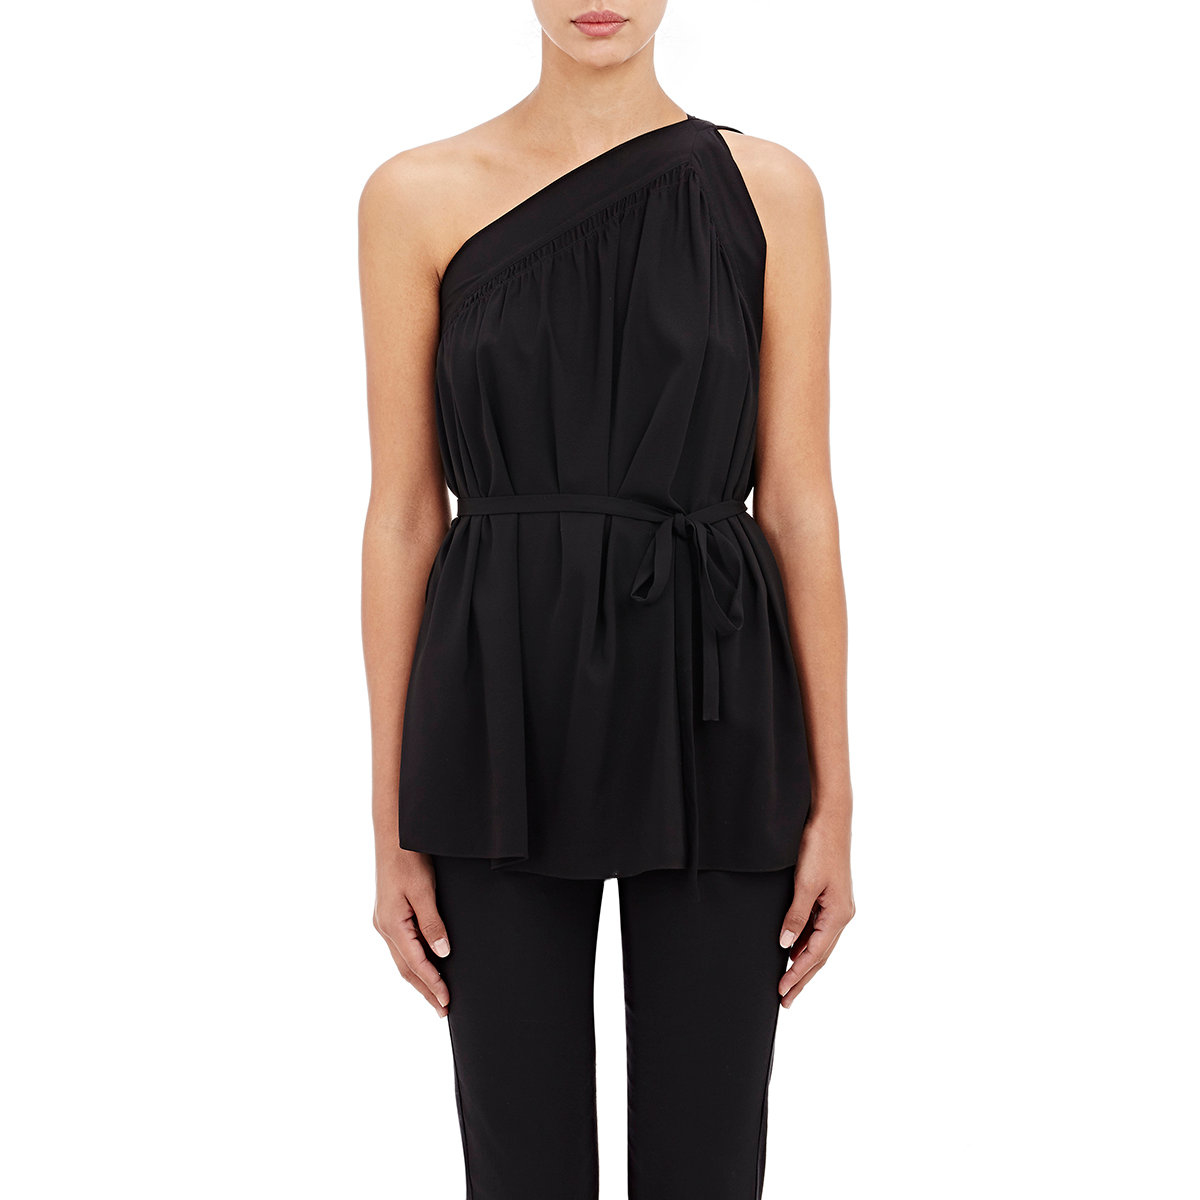 helmut lang women 39 s one shoulder belted top in black lyst. Black Bedroom Furniture Sets. Home Design Ideas